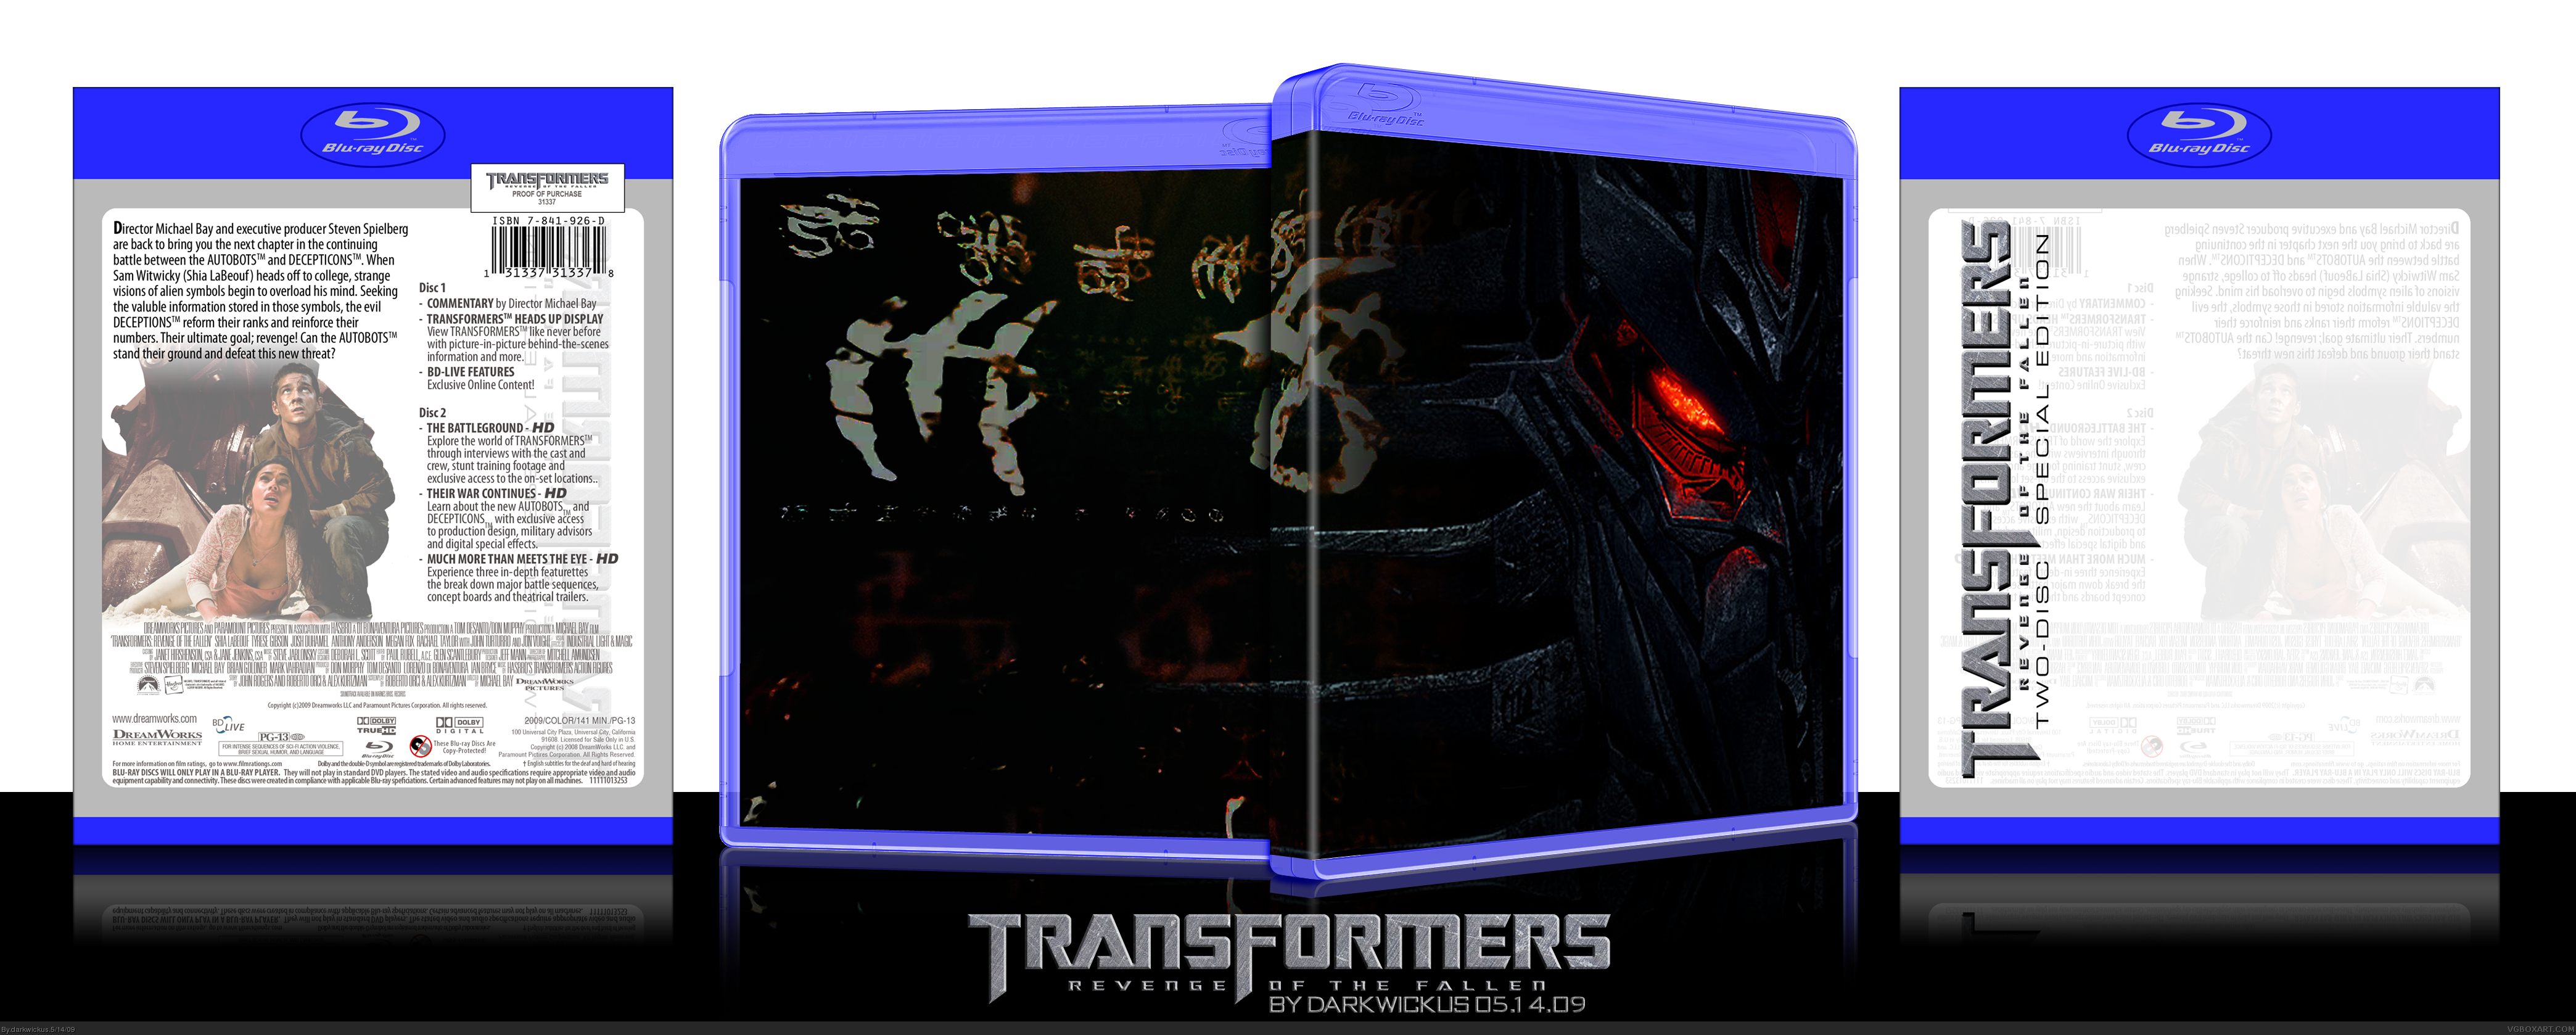 Transformers: Revenge of the Fallen box cover